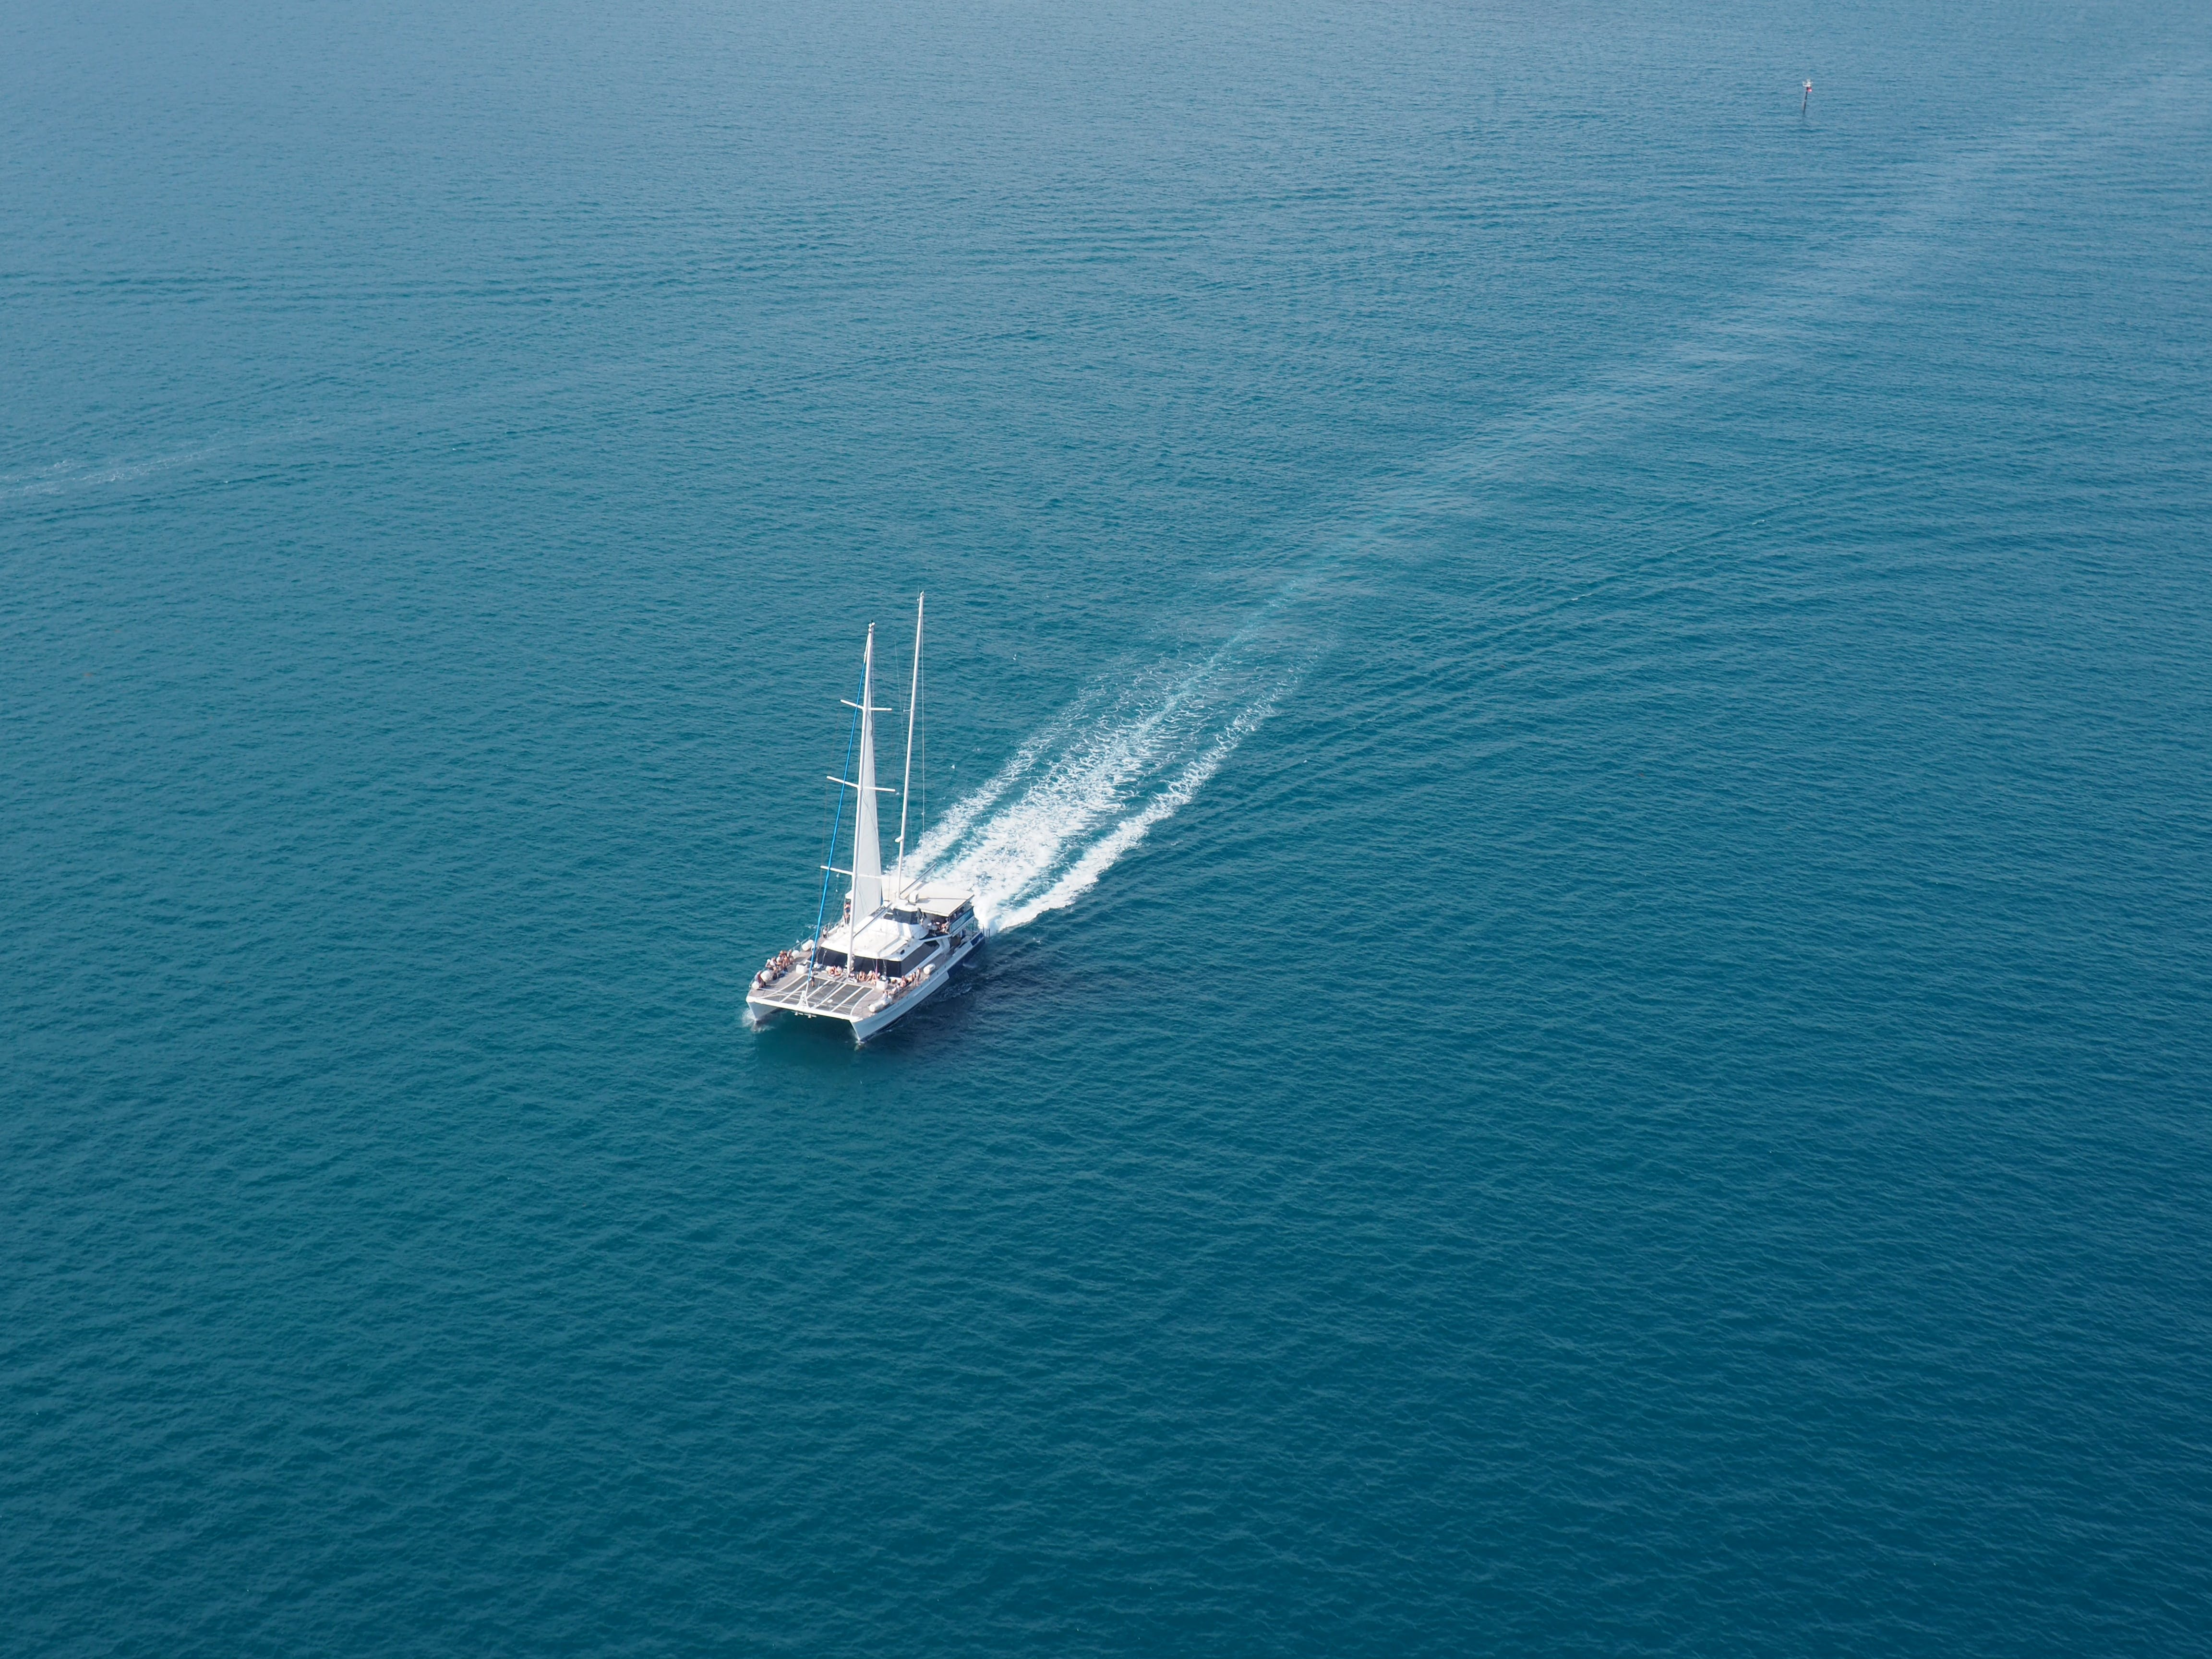 Photography of Sailboat on Sea